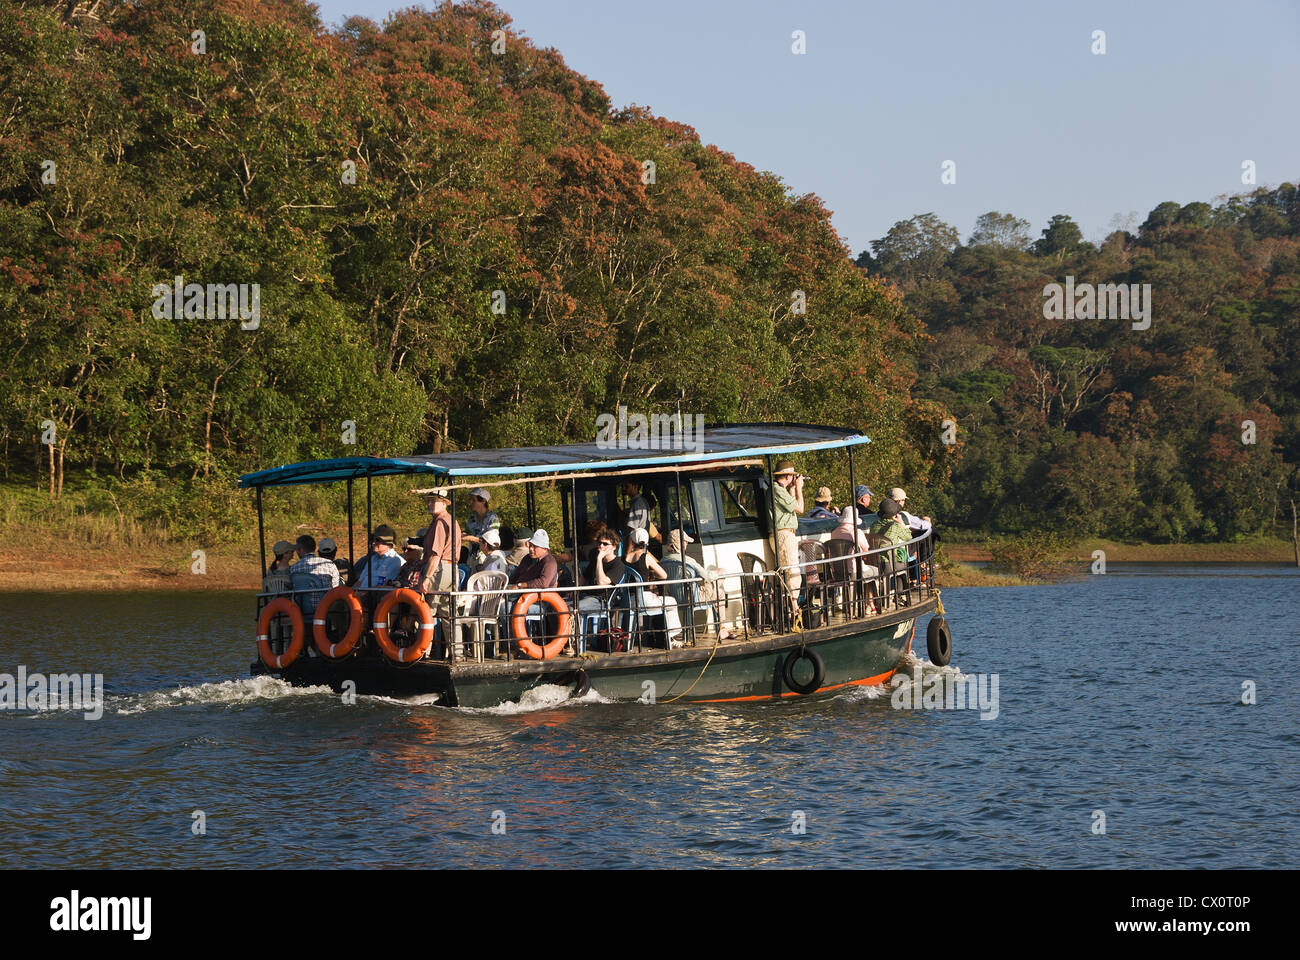 Elk201-3822 India, Kerala, Periyar National Park, park tour boat on lake - Stock Image